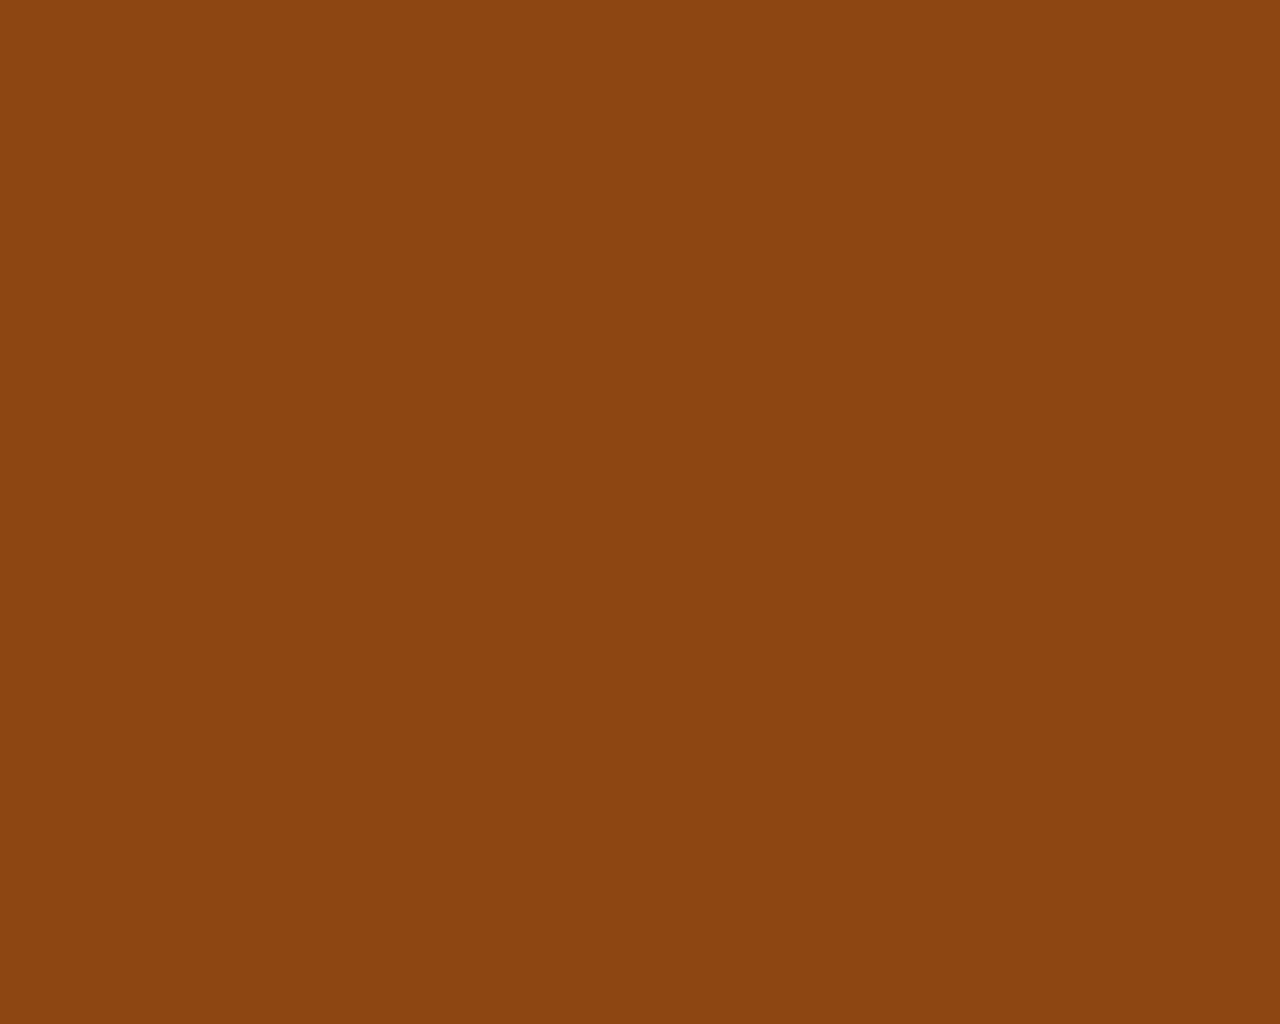 1280x1024 Saddle Brown Solid Color Background